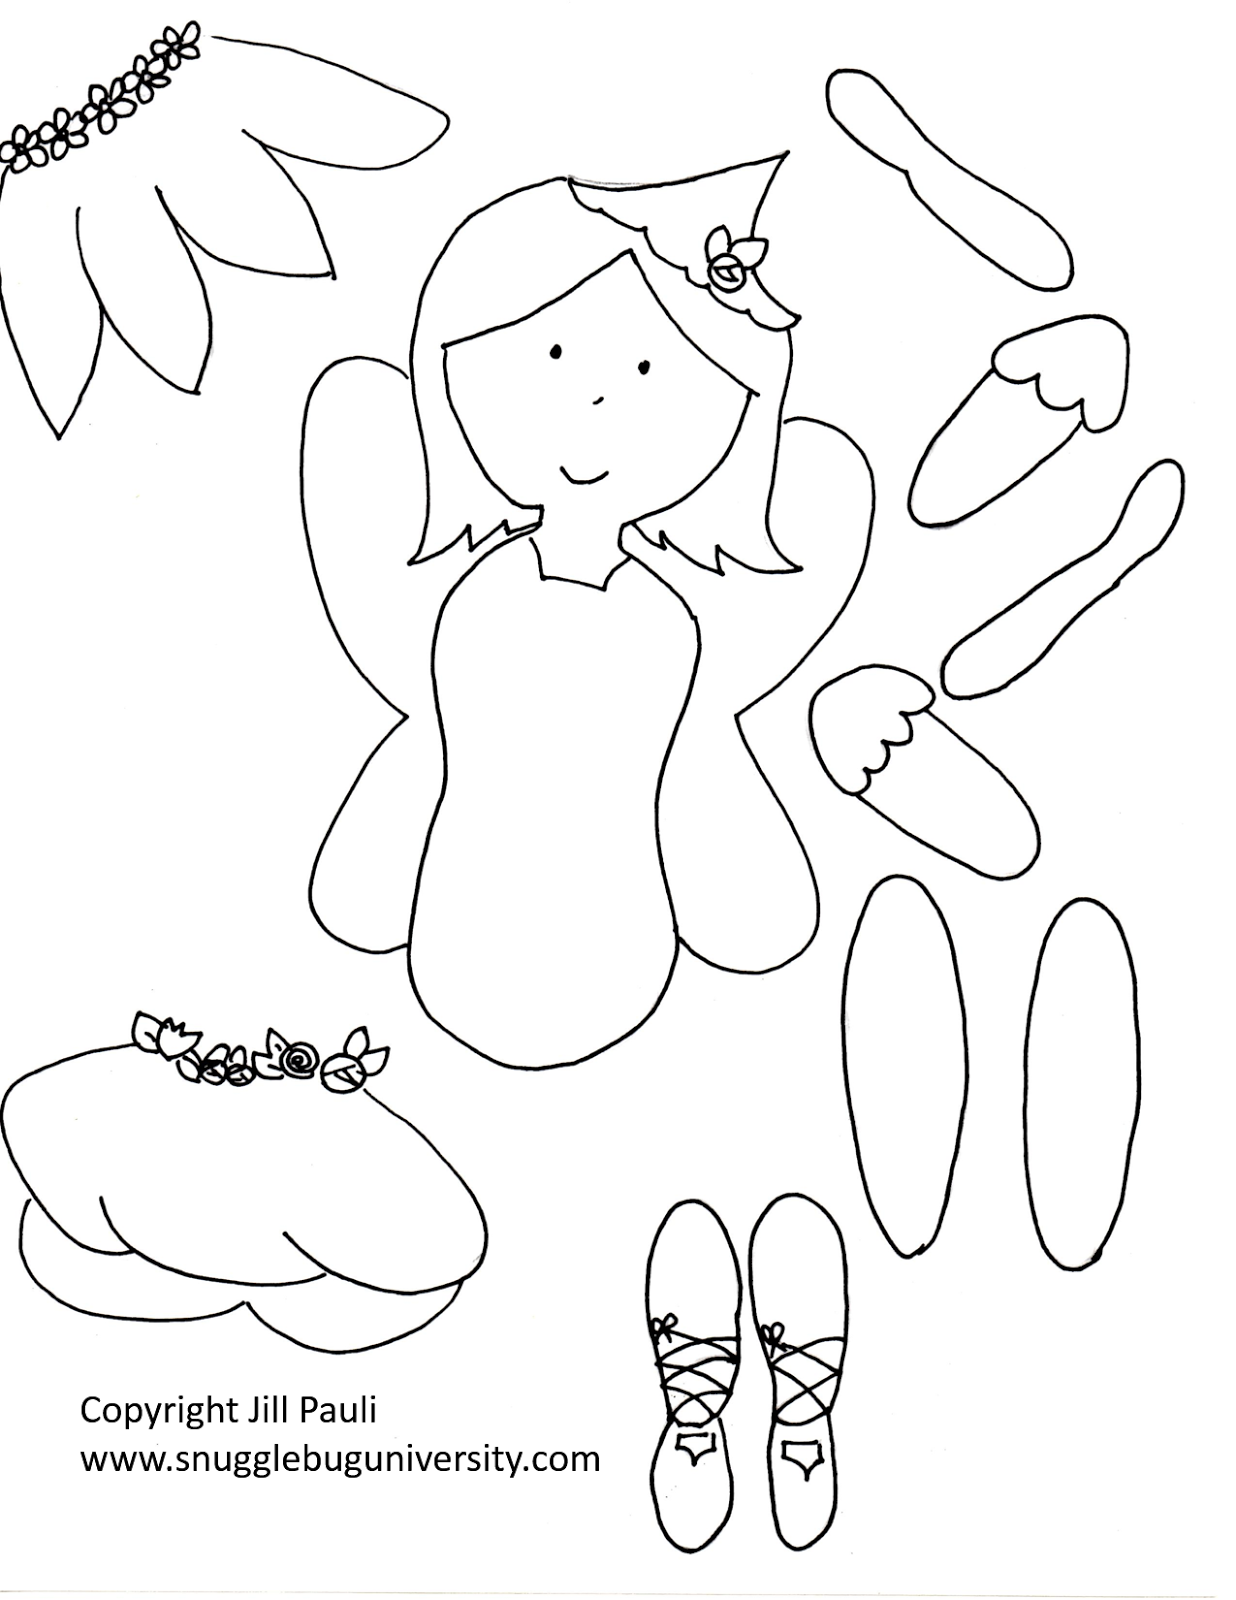 fairy cut out template - snugglebug university make your own fairy puppets